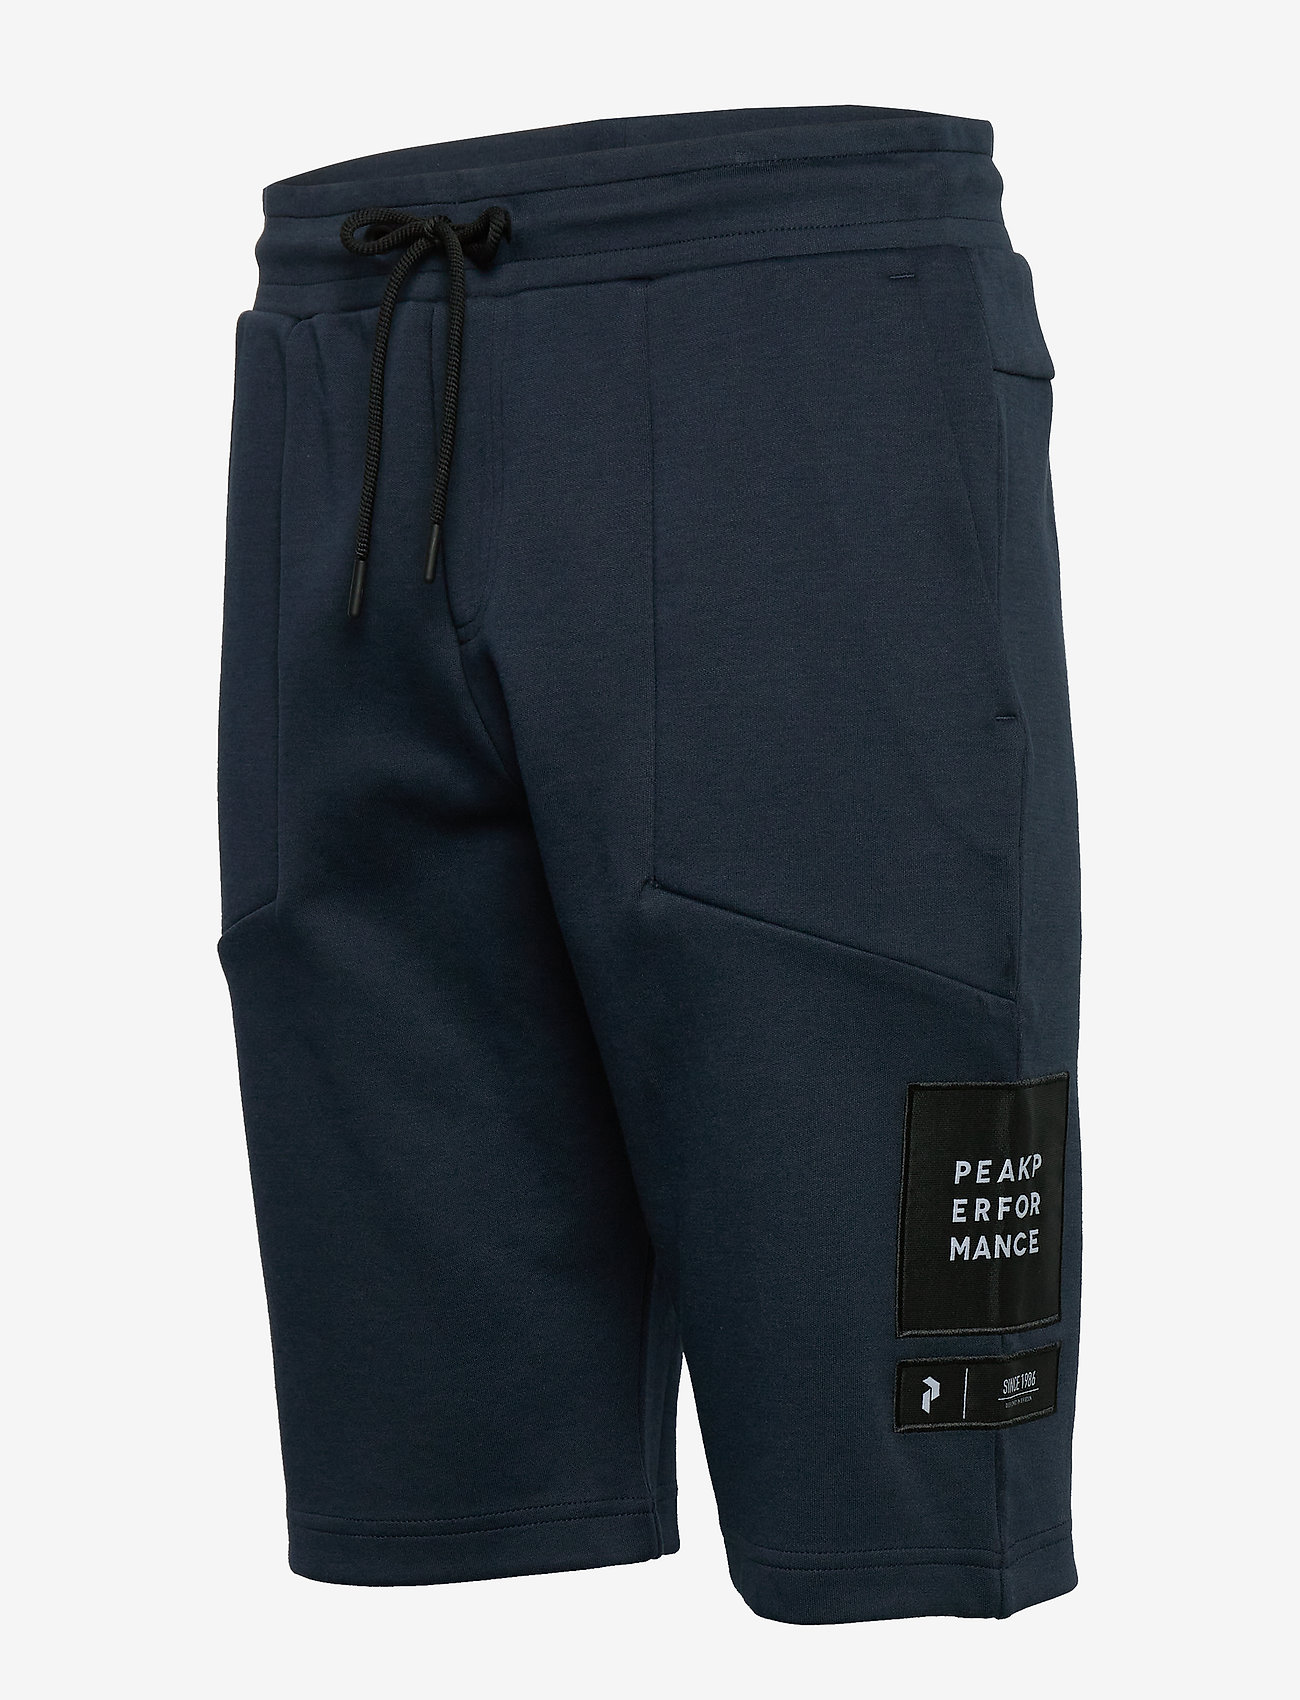 Peak Performance M Tech Shorts - Shorts BLUE SHADOW - Menn Klær